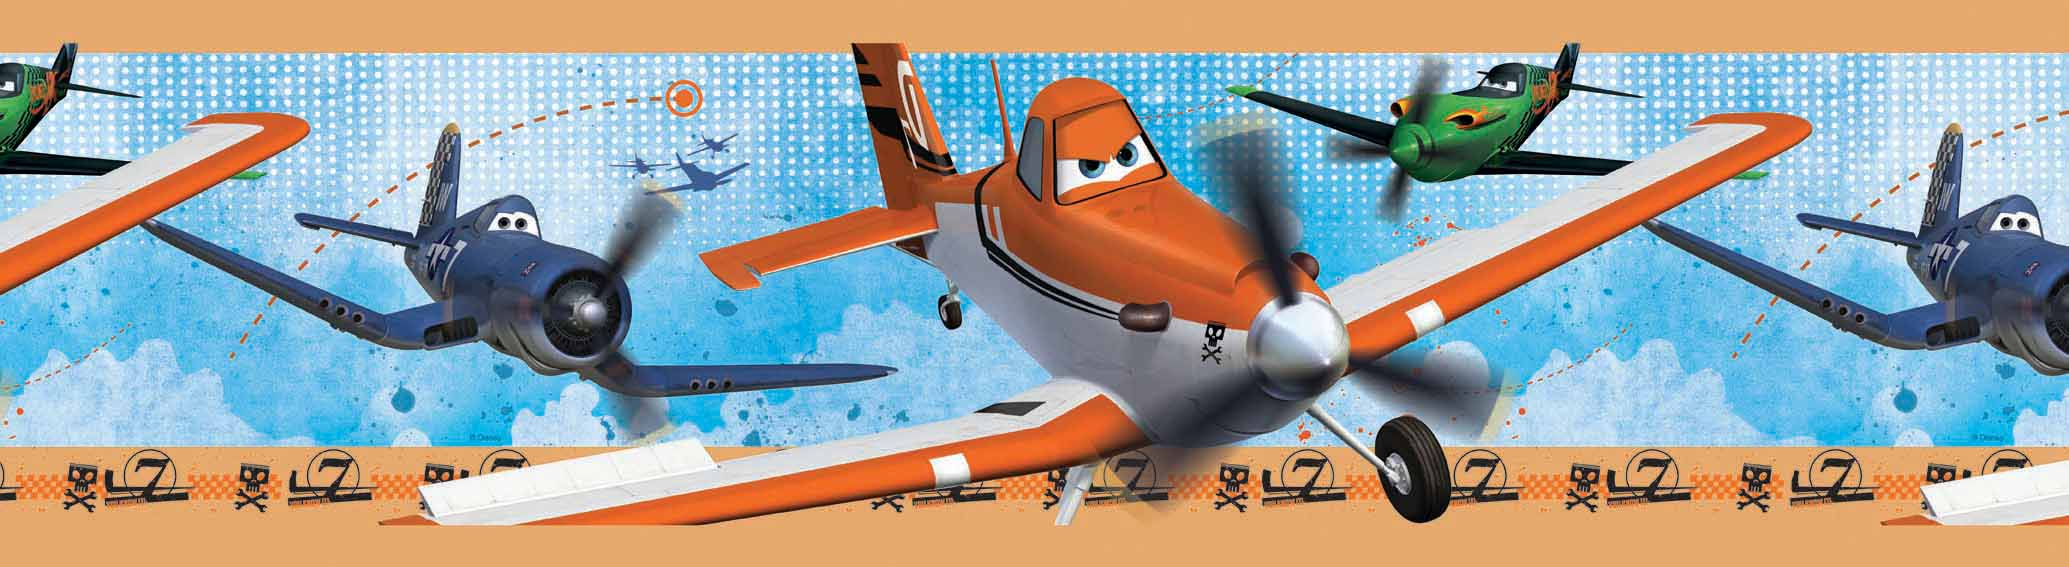 Guarda autoadhesiva aviones DISNEY 1269-1 Decolife Muresco